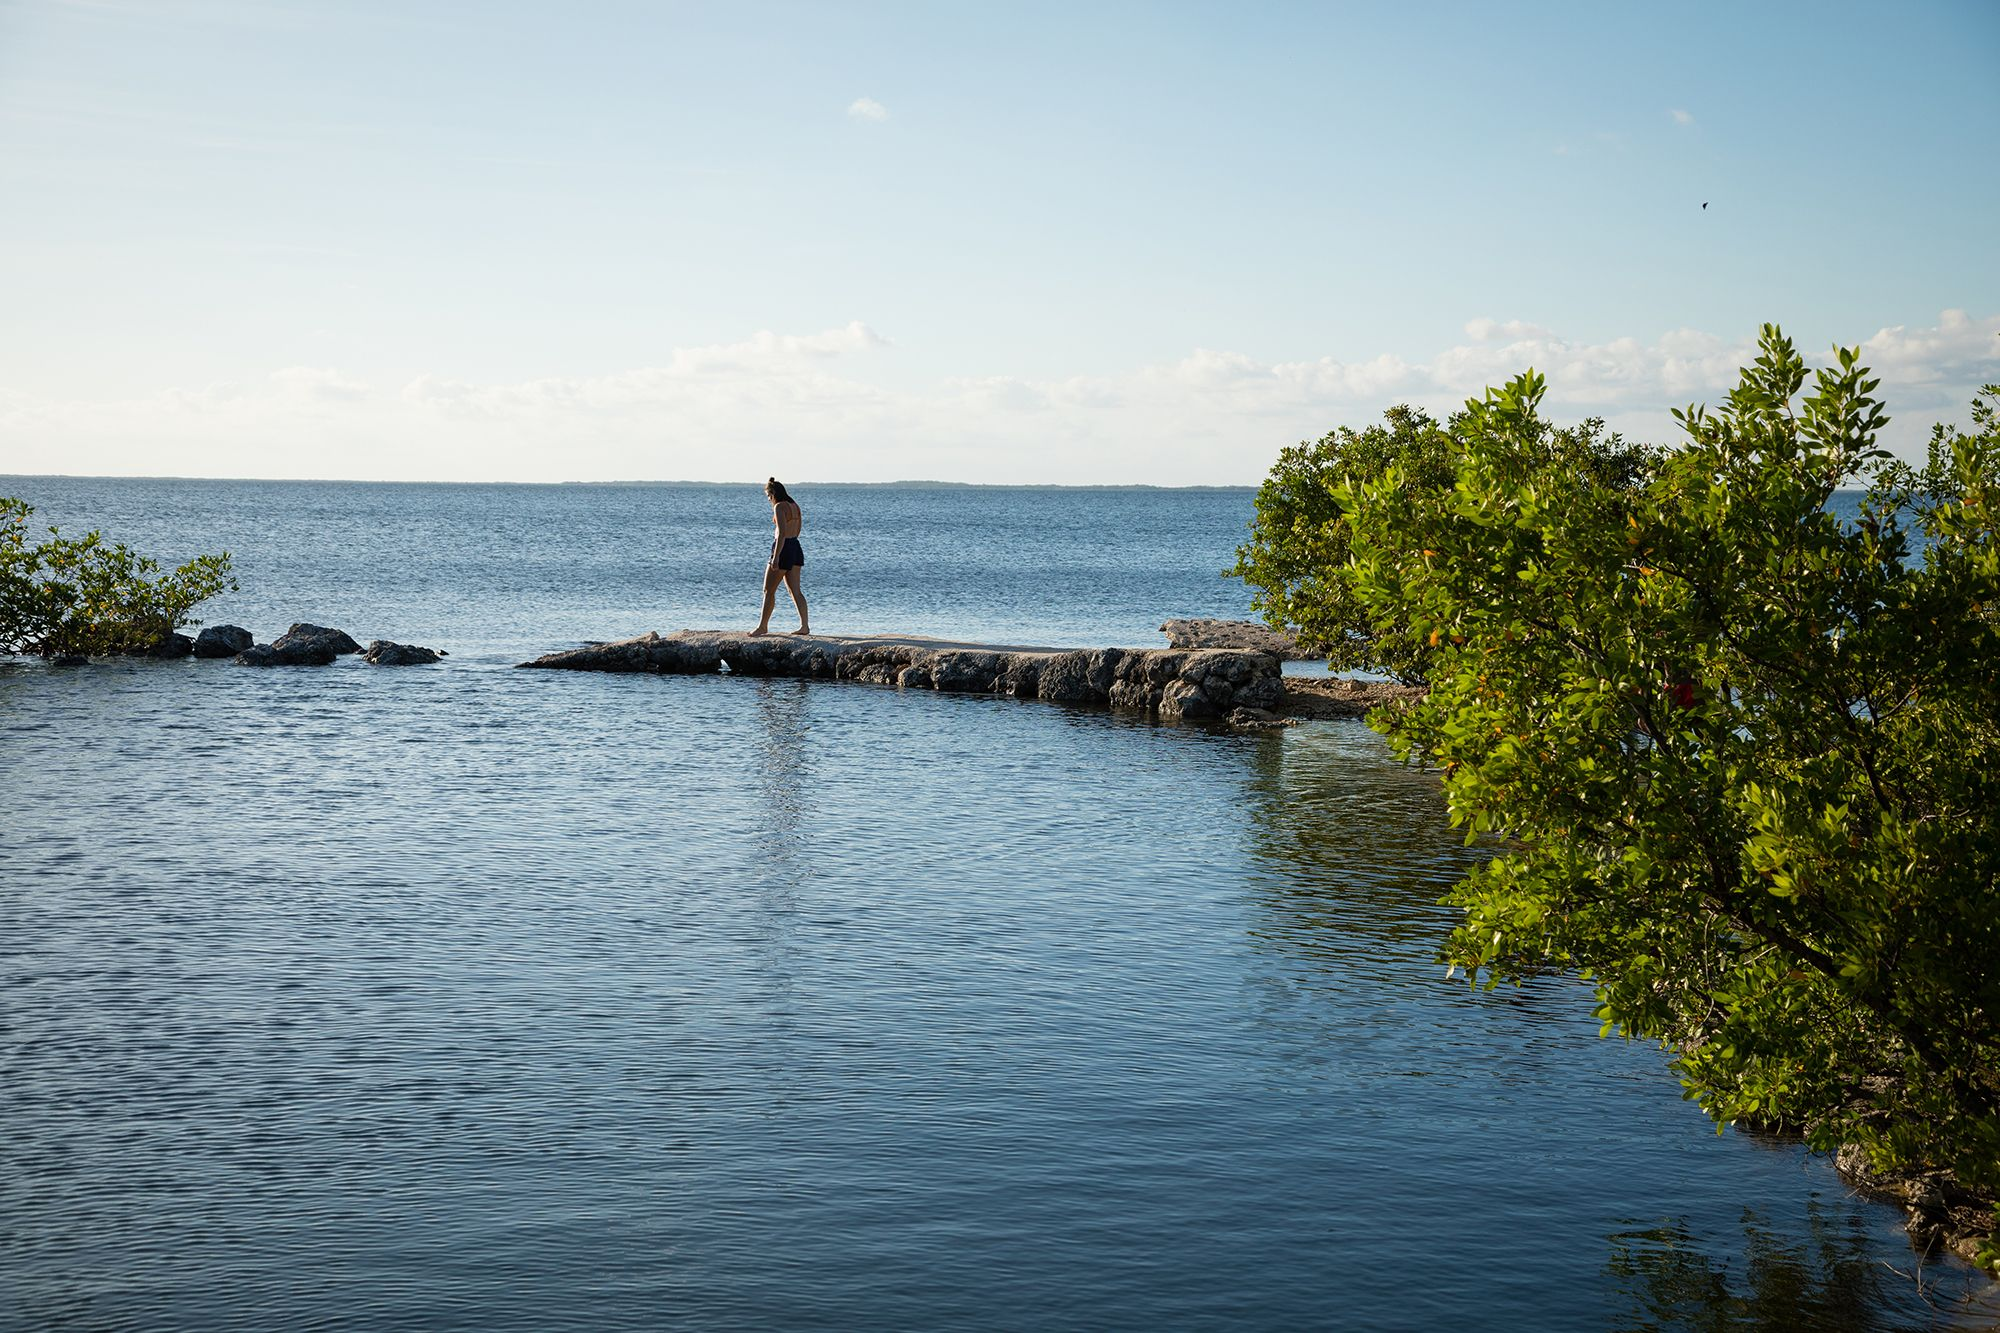 Student walking out on a sandbar over the water in the Everglades.